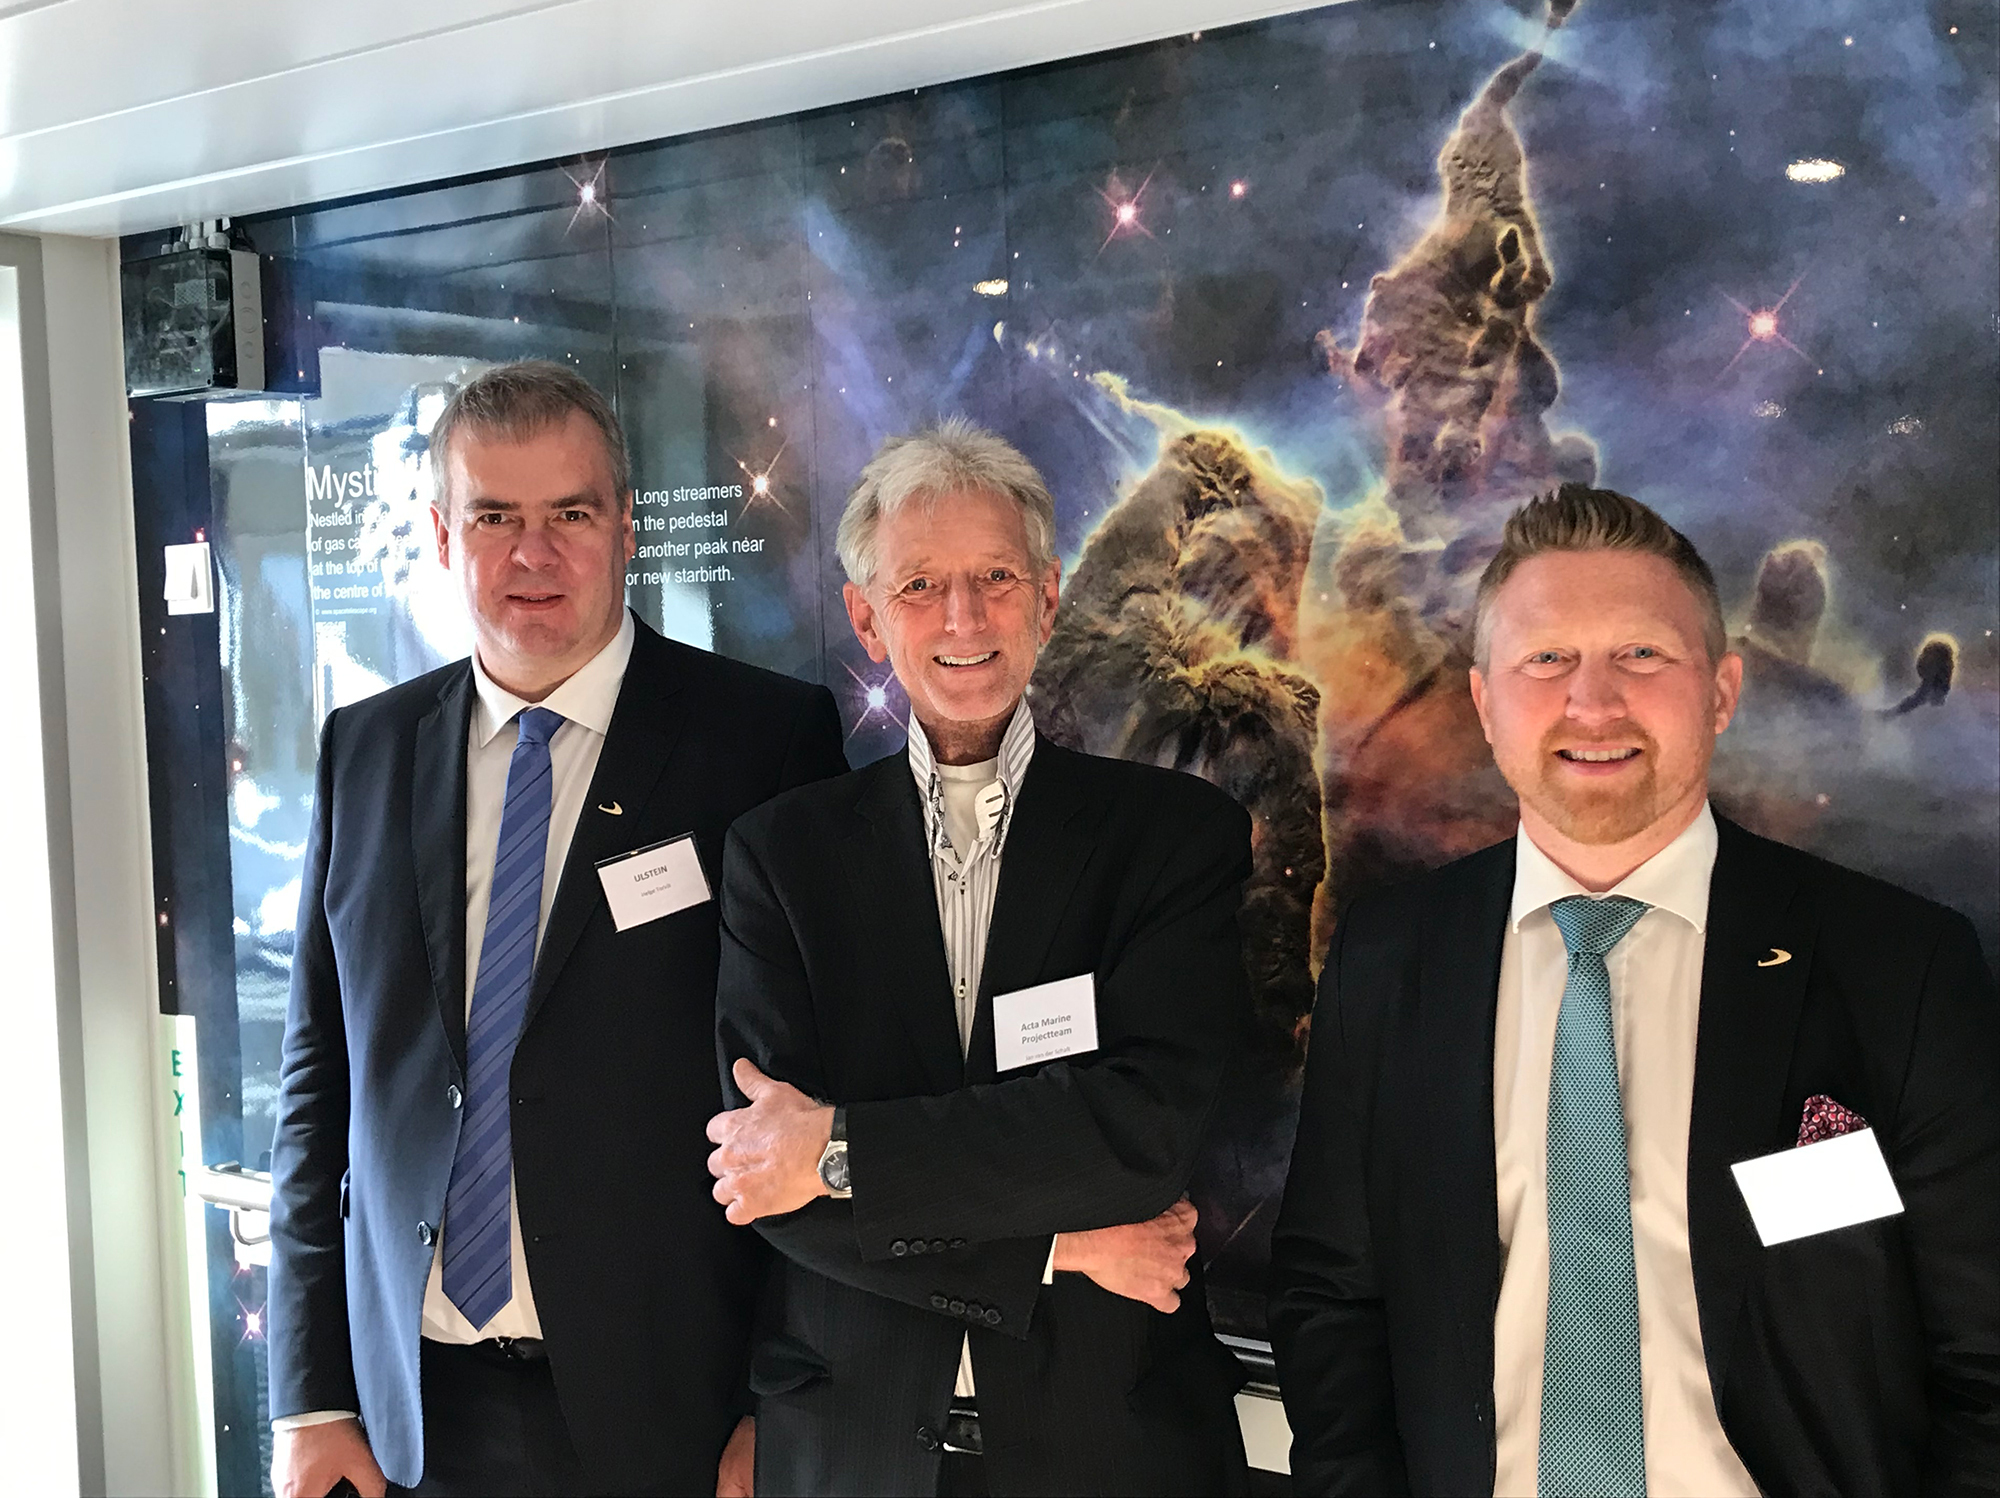 Acta Marine's Jan van der Schaft together with Ulstein Verft's Helge Torvik (left) and Trond S. Bø (right).